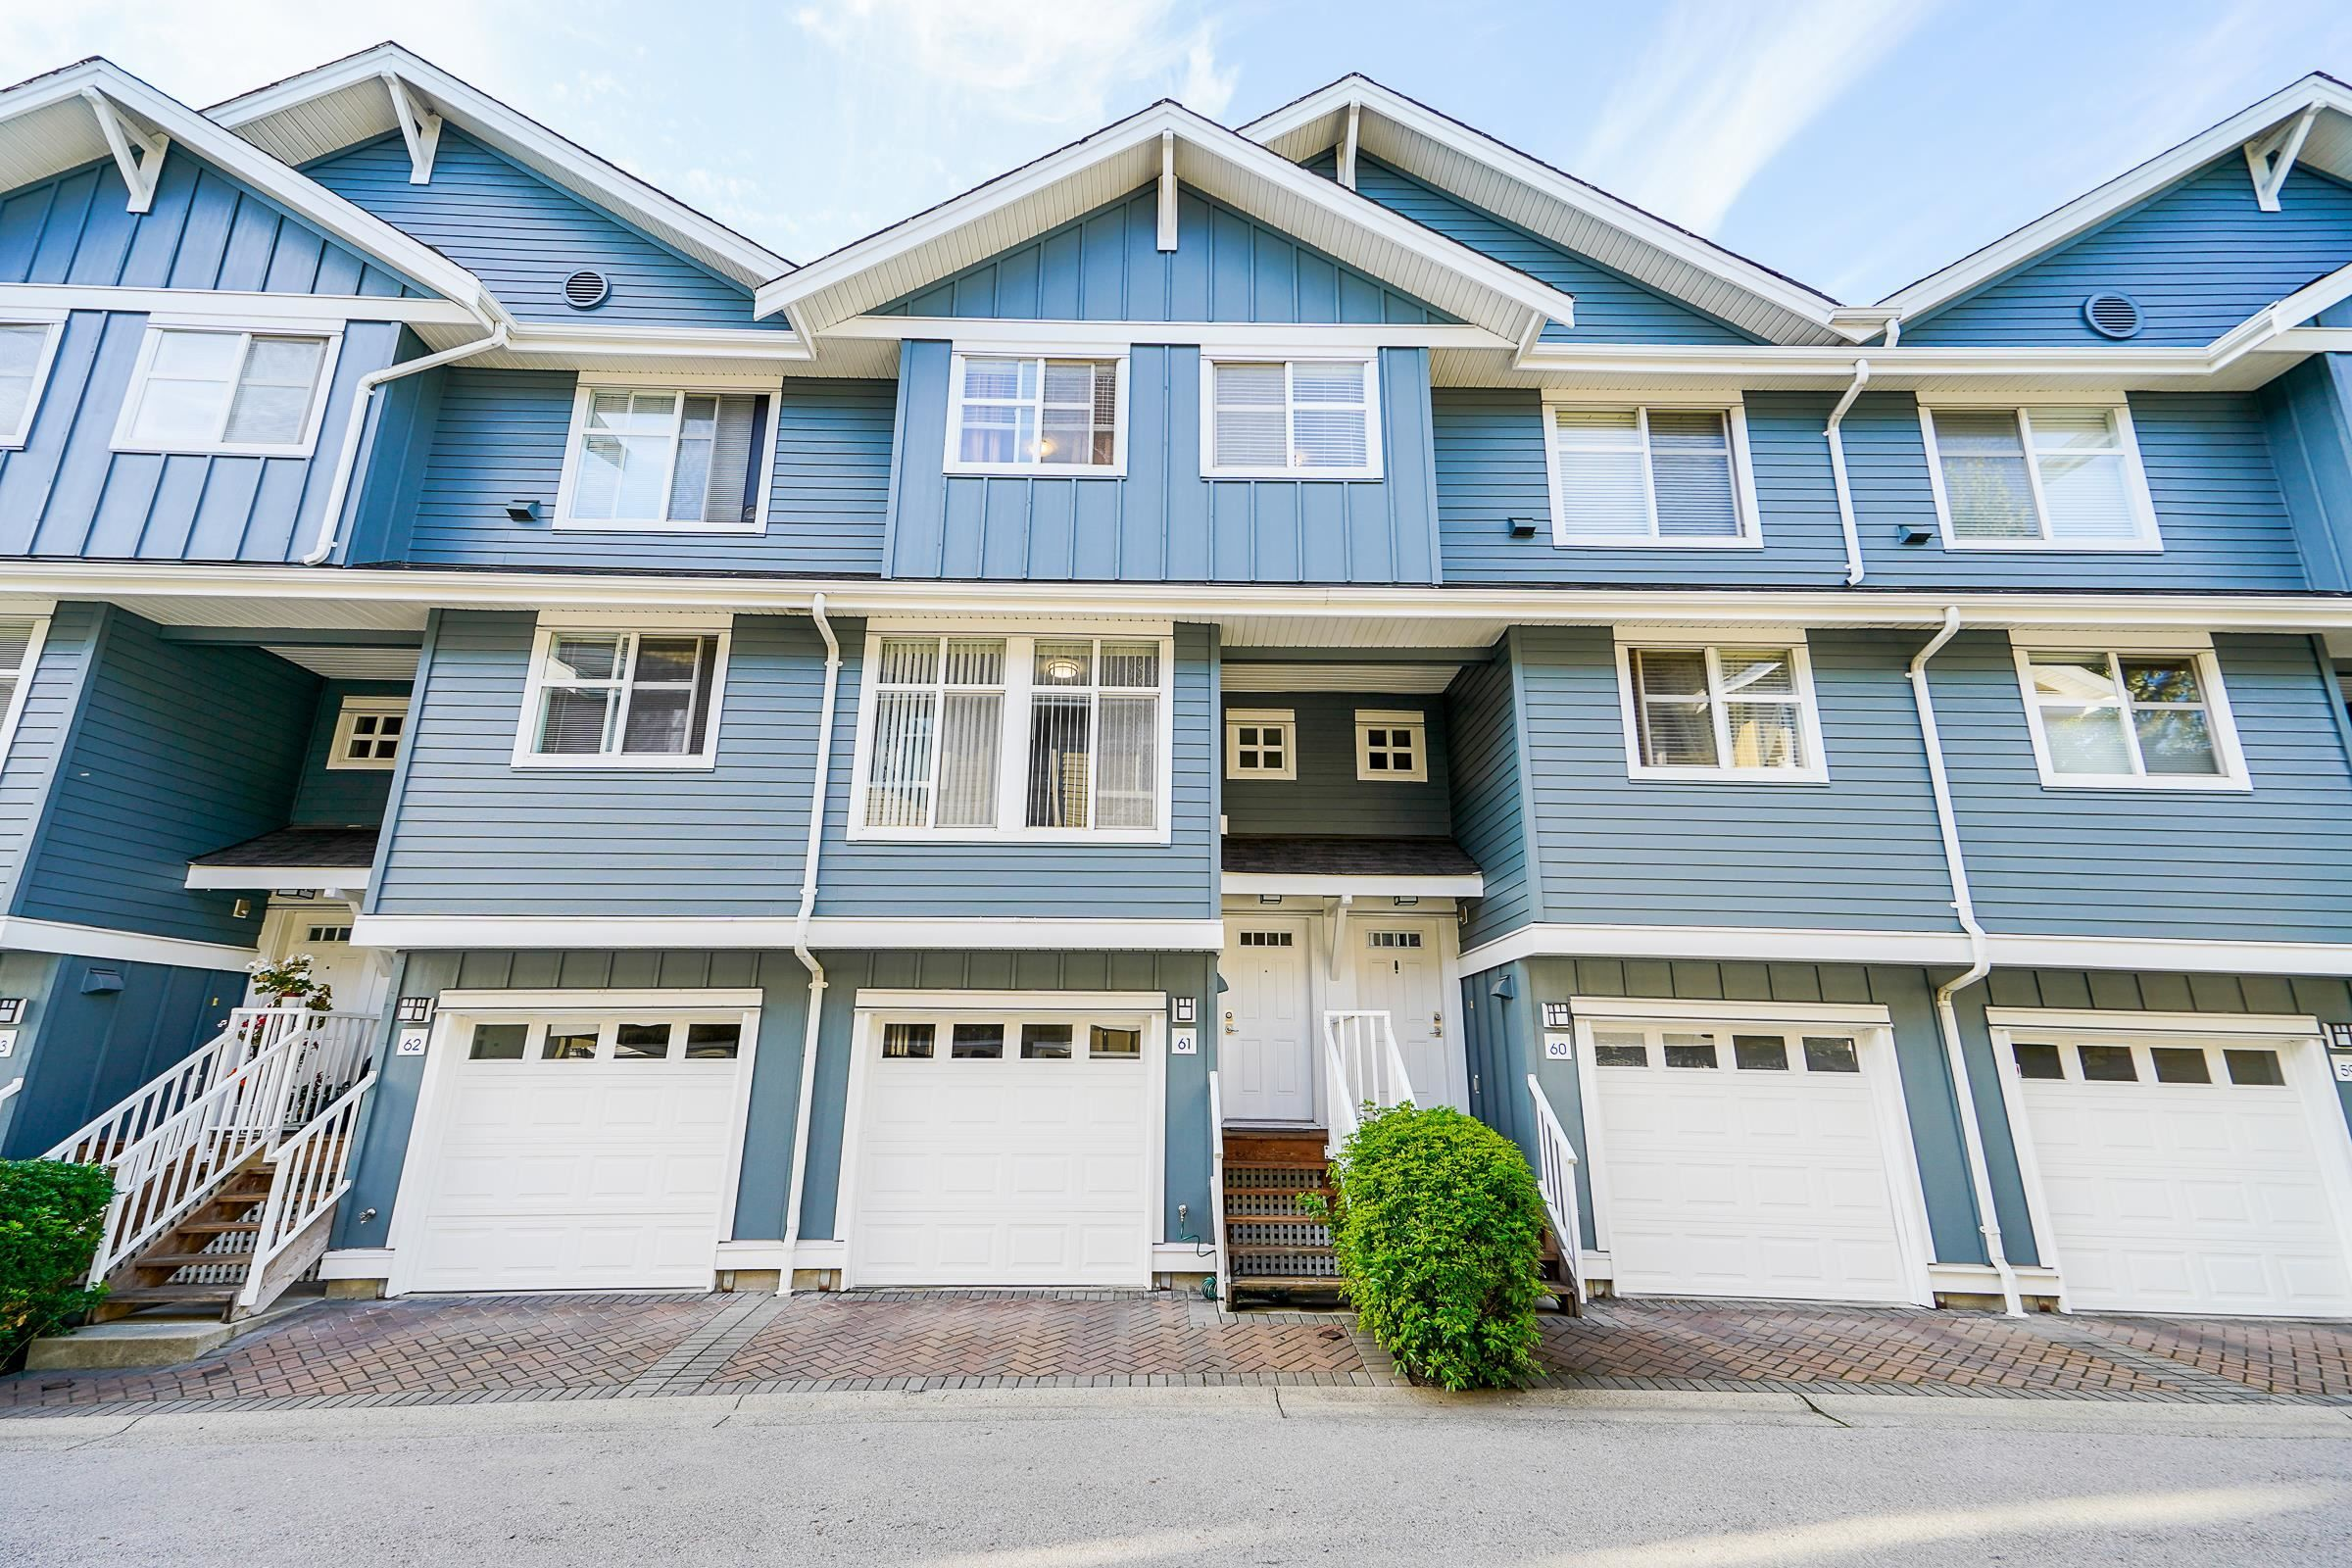 """Main Photo: 61 935 EWEN Avenue in New Westminster: Queensborough Townhouse for sale in """"COOPERS LANDING"""" : MLS®# R2620520"""